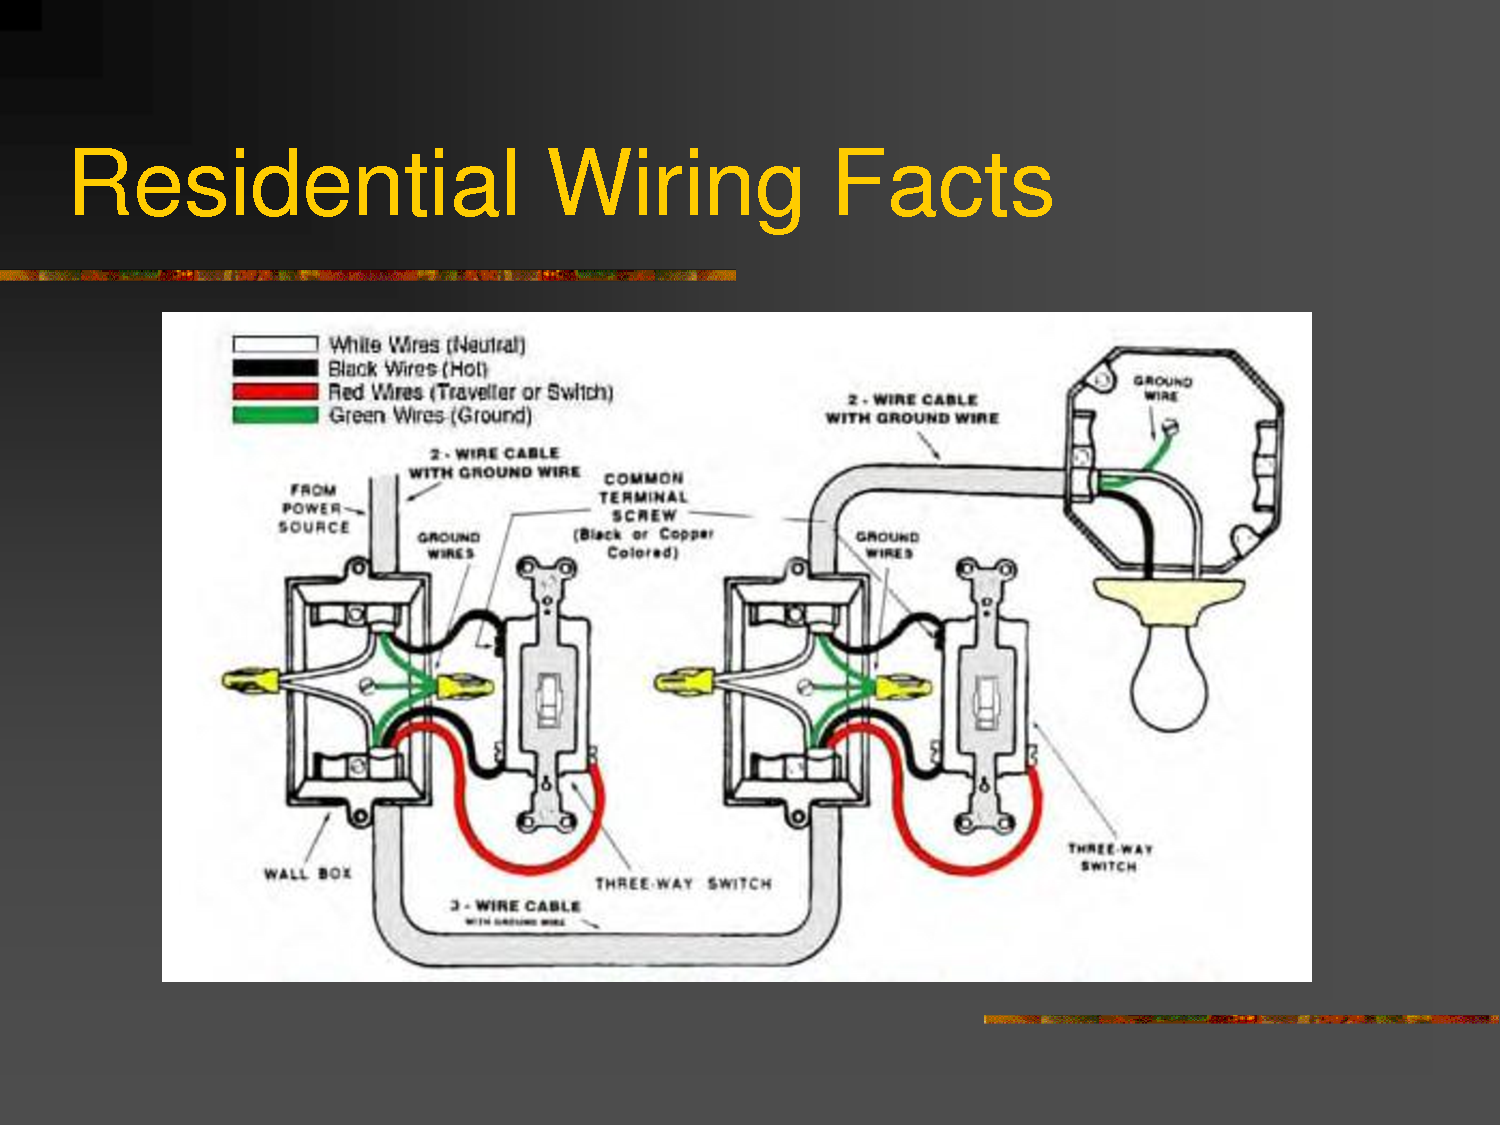 Wiring Diagram For Residential : Best images of residential wiring diagrams house